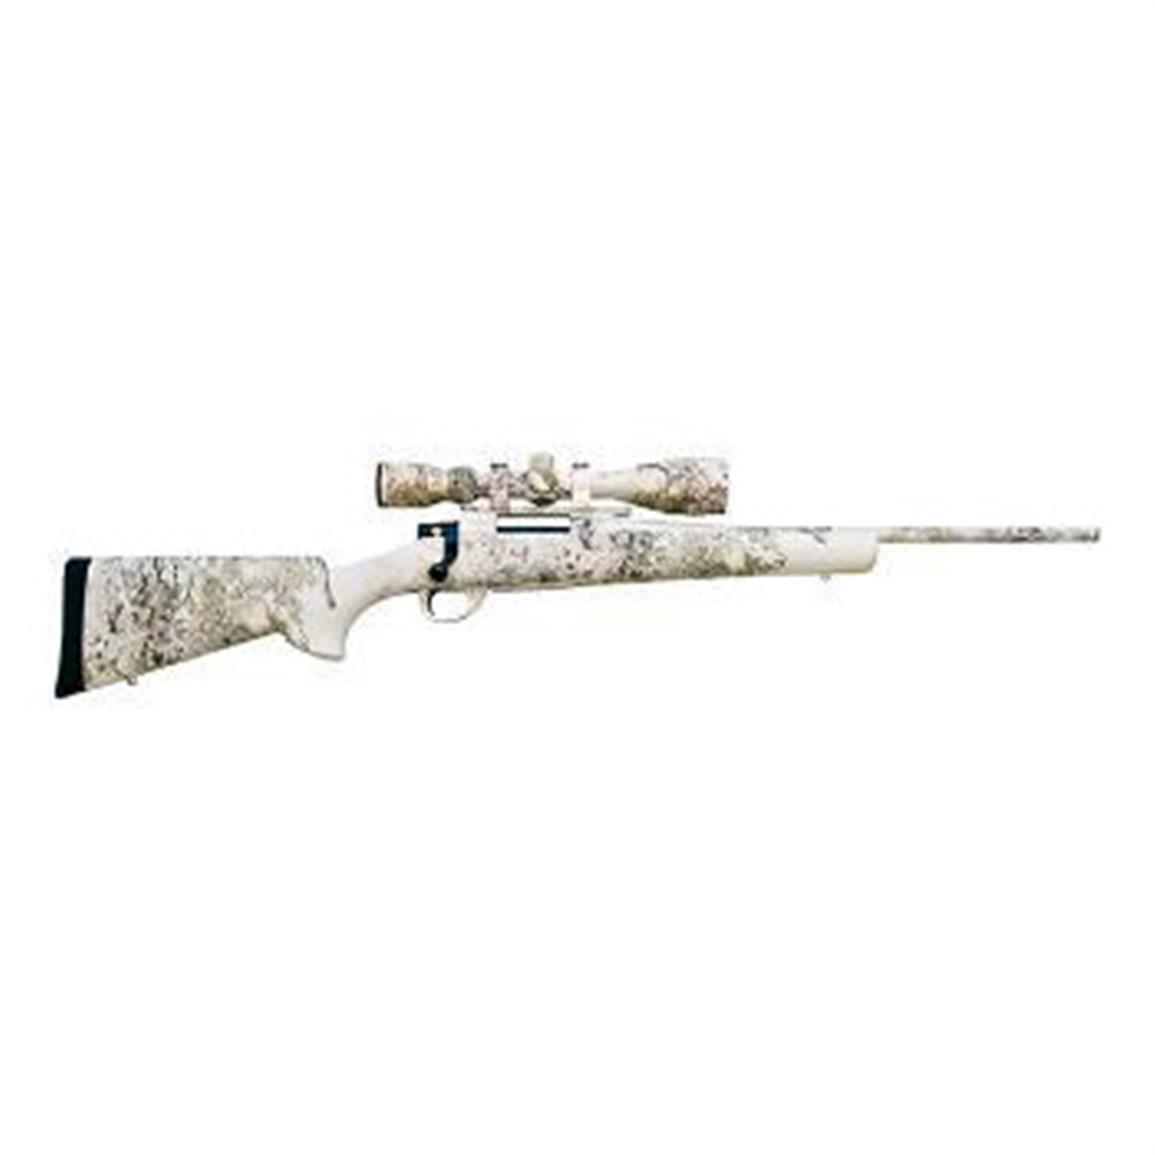 LSI Howa Hogue Snowking Package, Bolt Action, .308 Winchester, Nikko Stirling 4-16x44 Scope